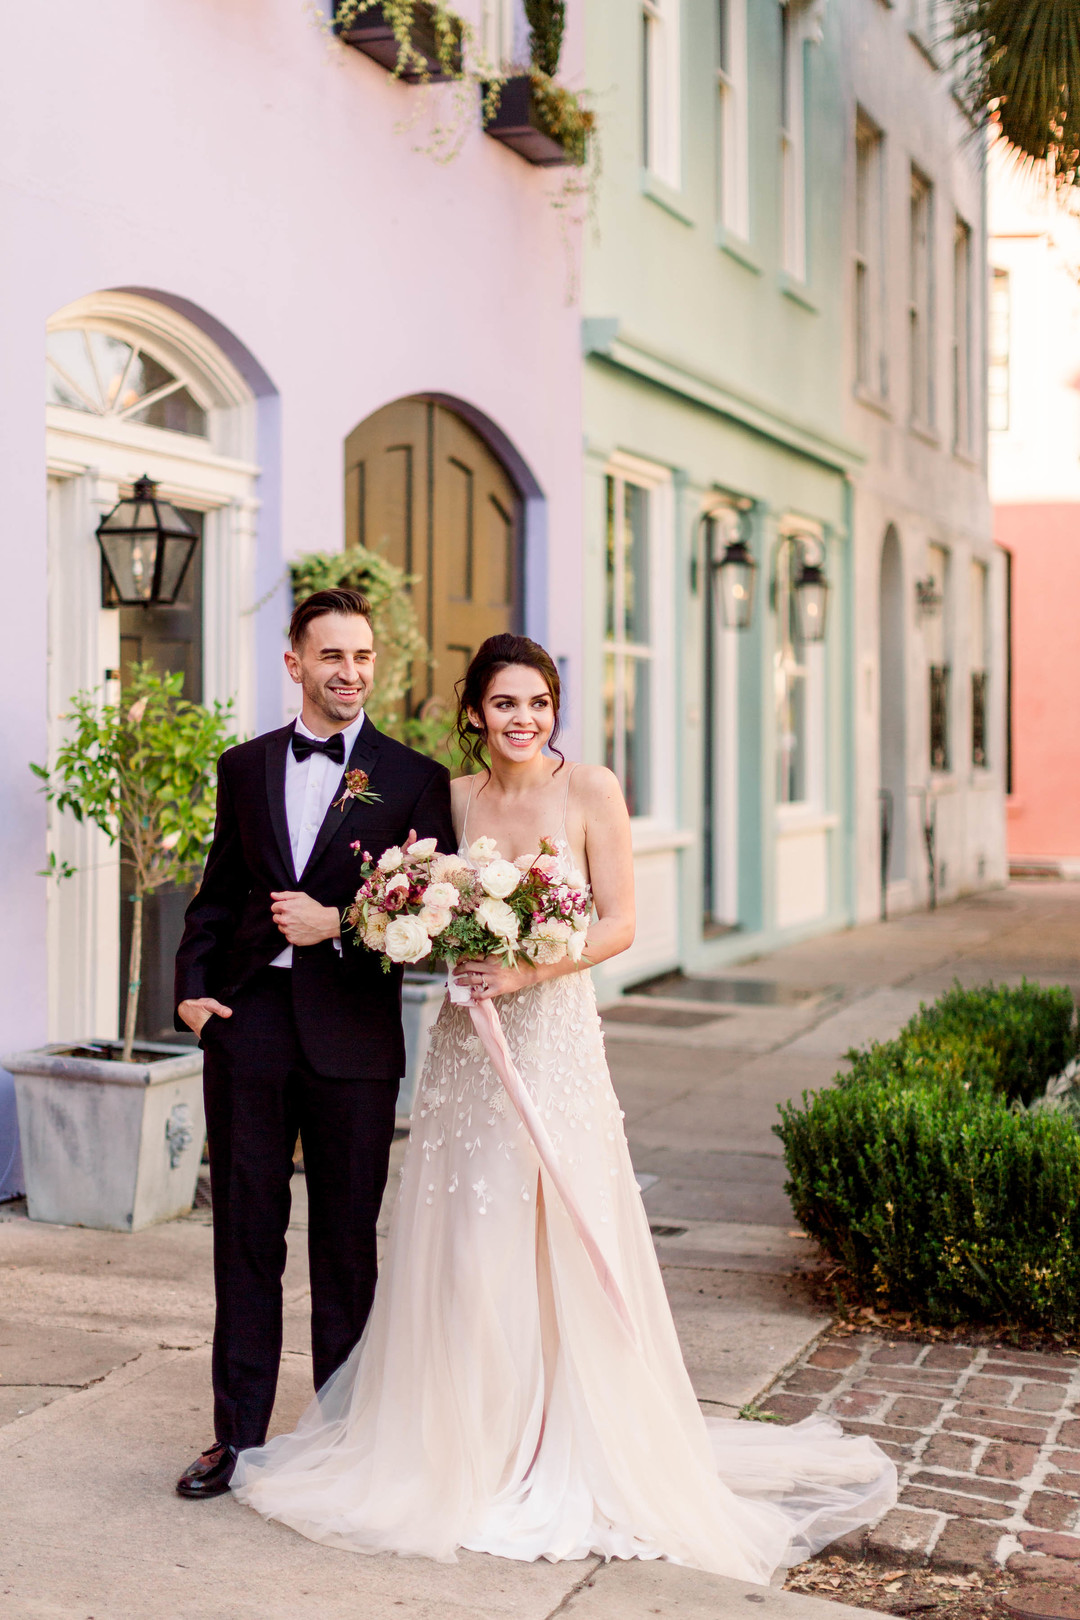 downtown-charleston-wedding-elopement-6.jpg